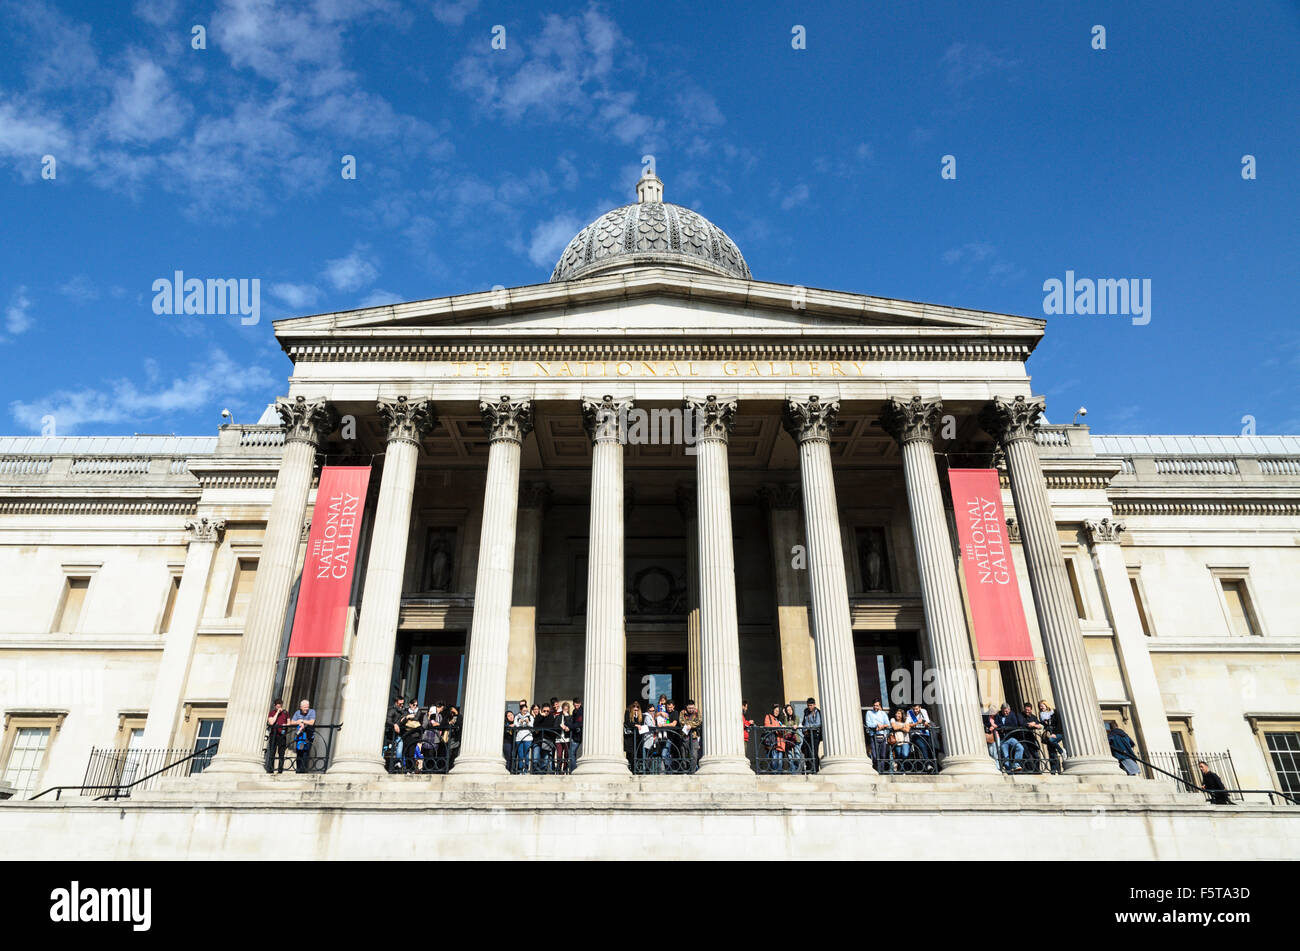 Tourists crowd the balcony of The National Gallery, Trafalgar Square, London, England, UK. - Stock Image